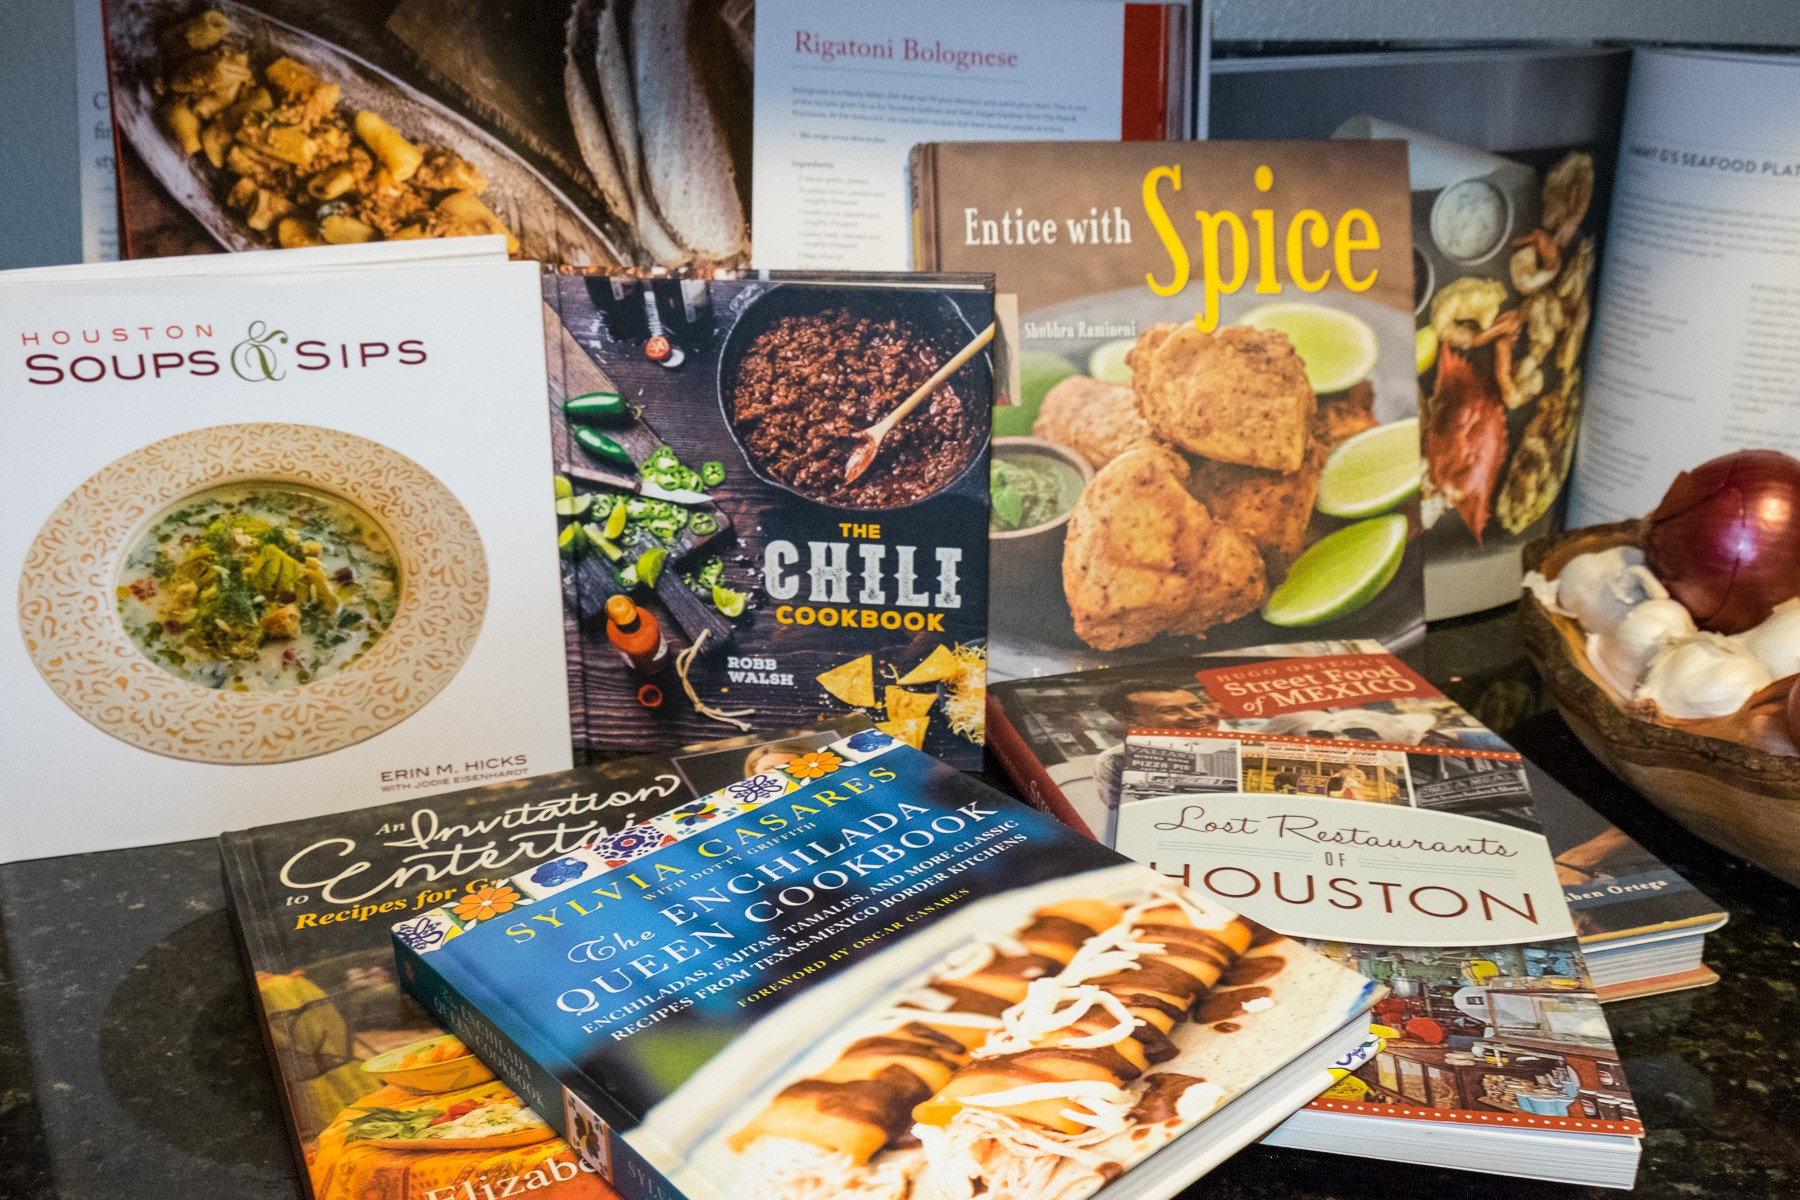 Houston cookbooks